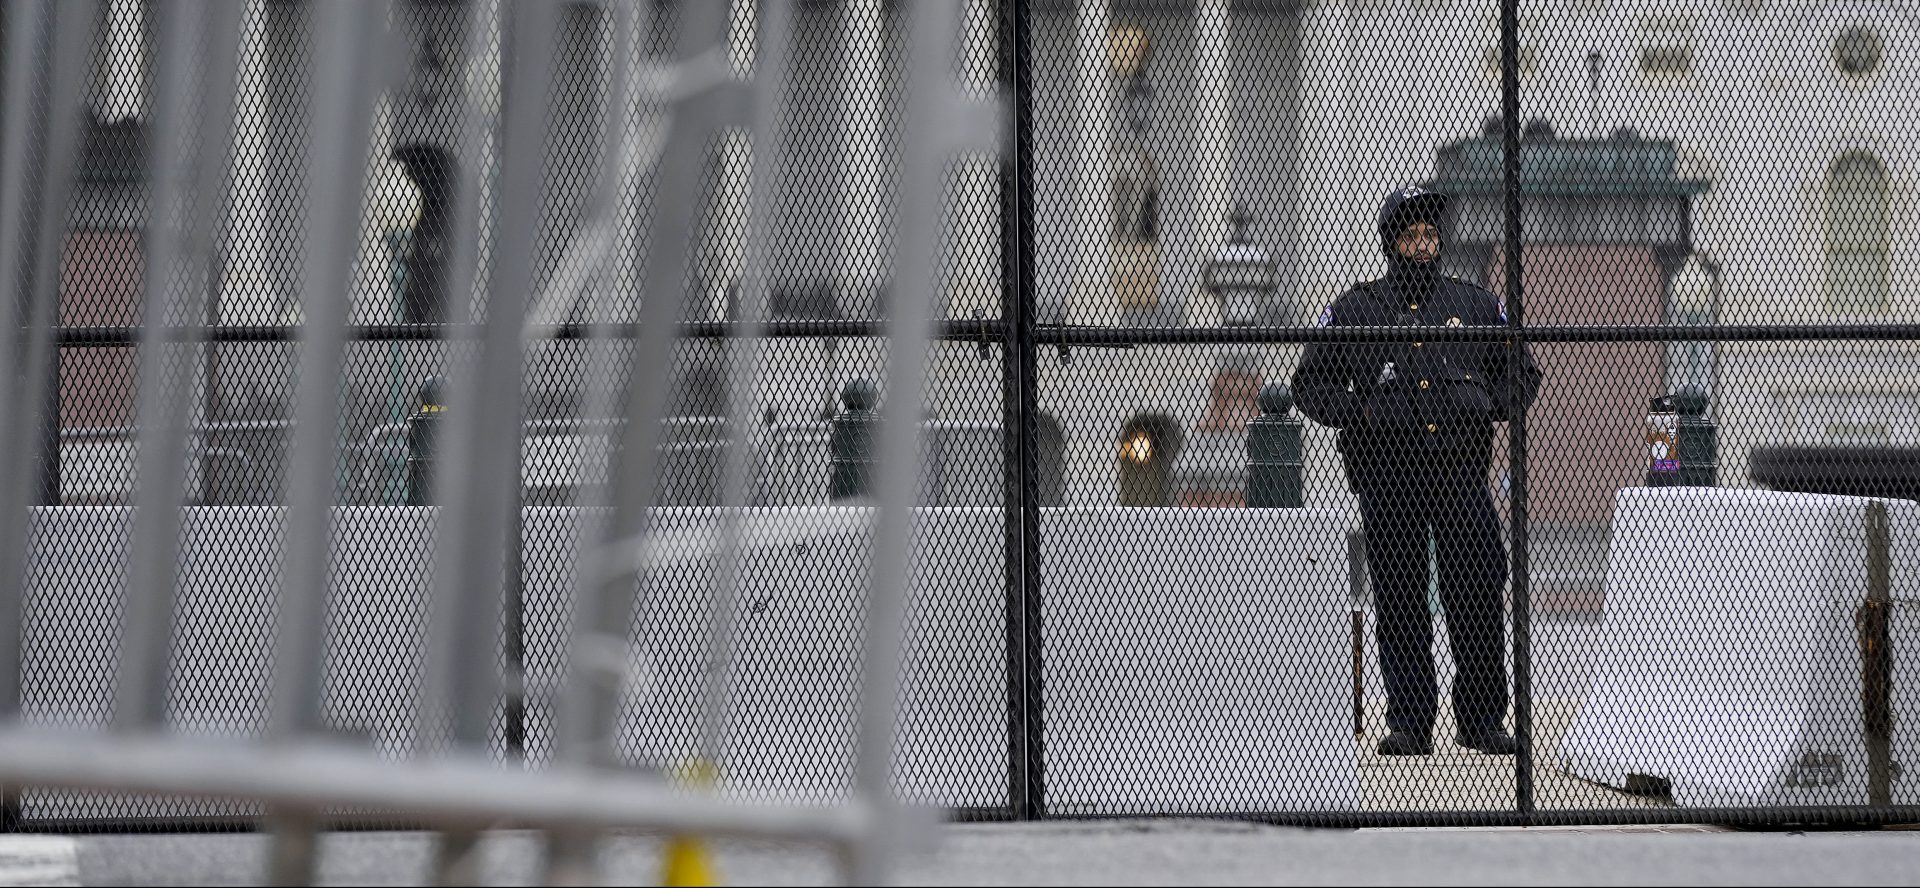 A member of the U.S. Capitol Police stands behind security fencing outside the Capitol Building in Washington, Friday, Jan. 8, 2021, in response to supporters of President Donald Trump who stormed the U.S. Capitol.